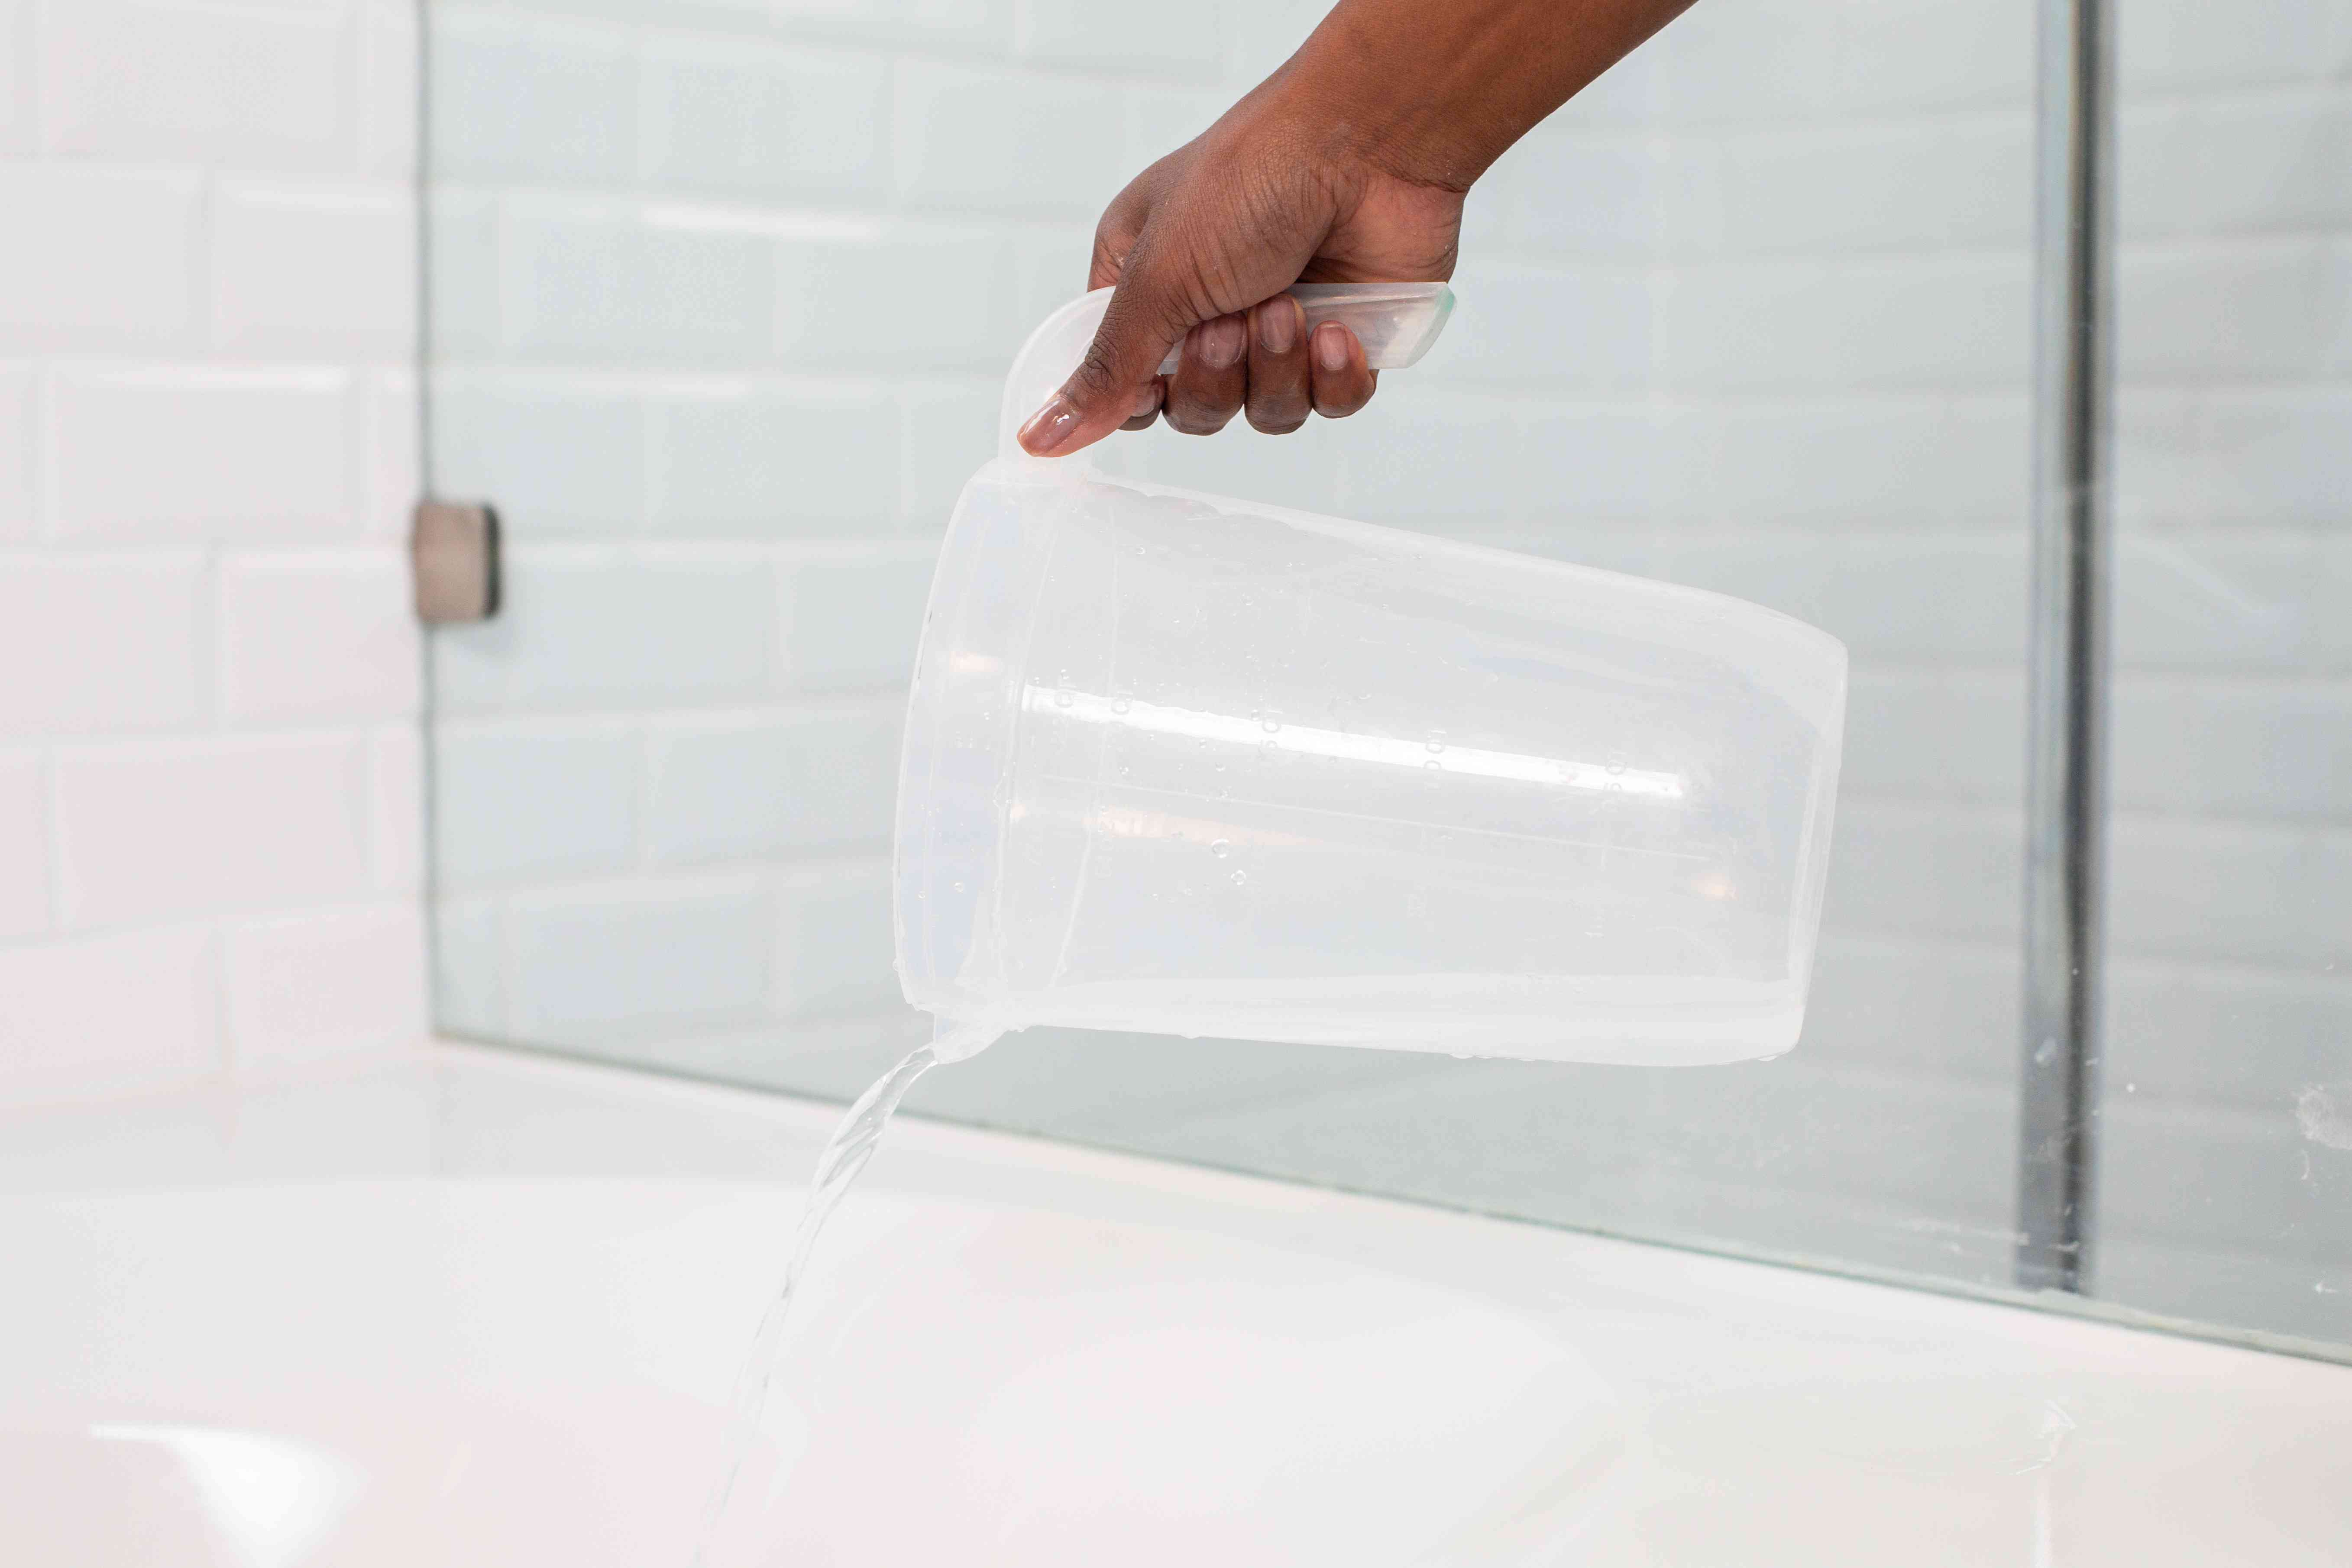 Bathtub rinsed with plastic pitcher pouring water